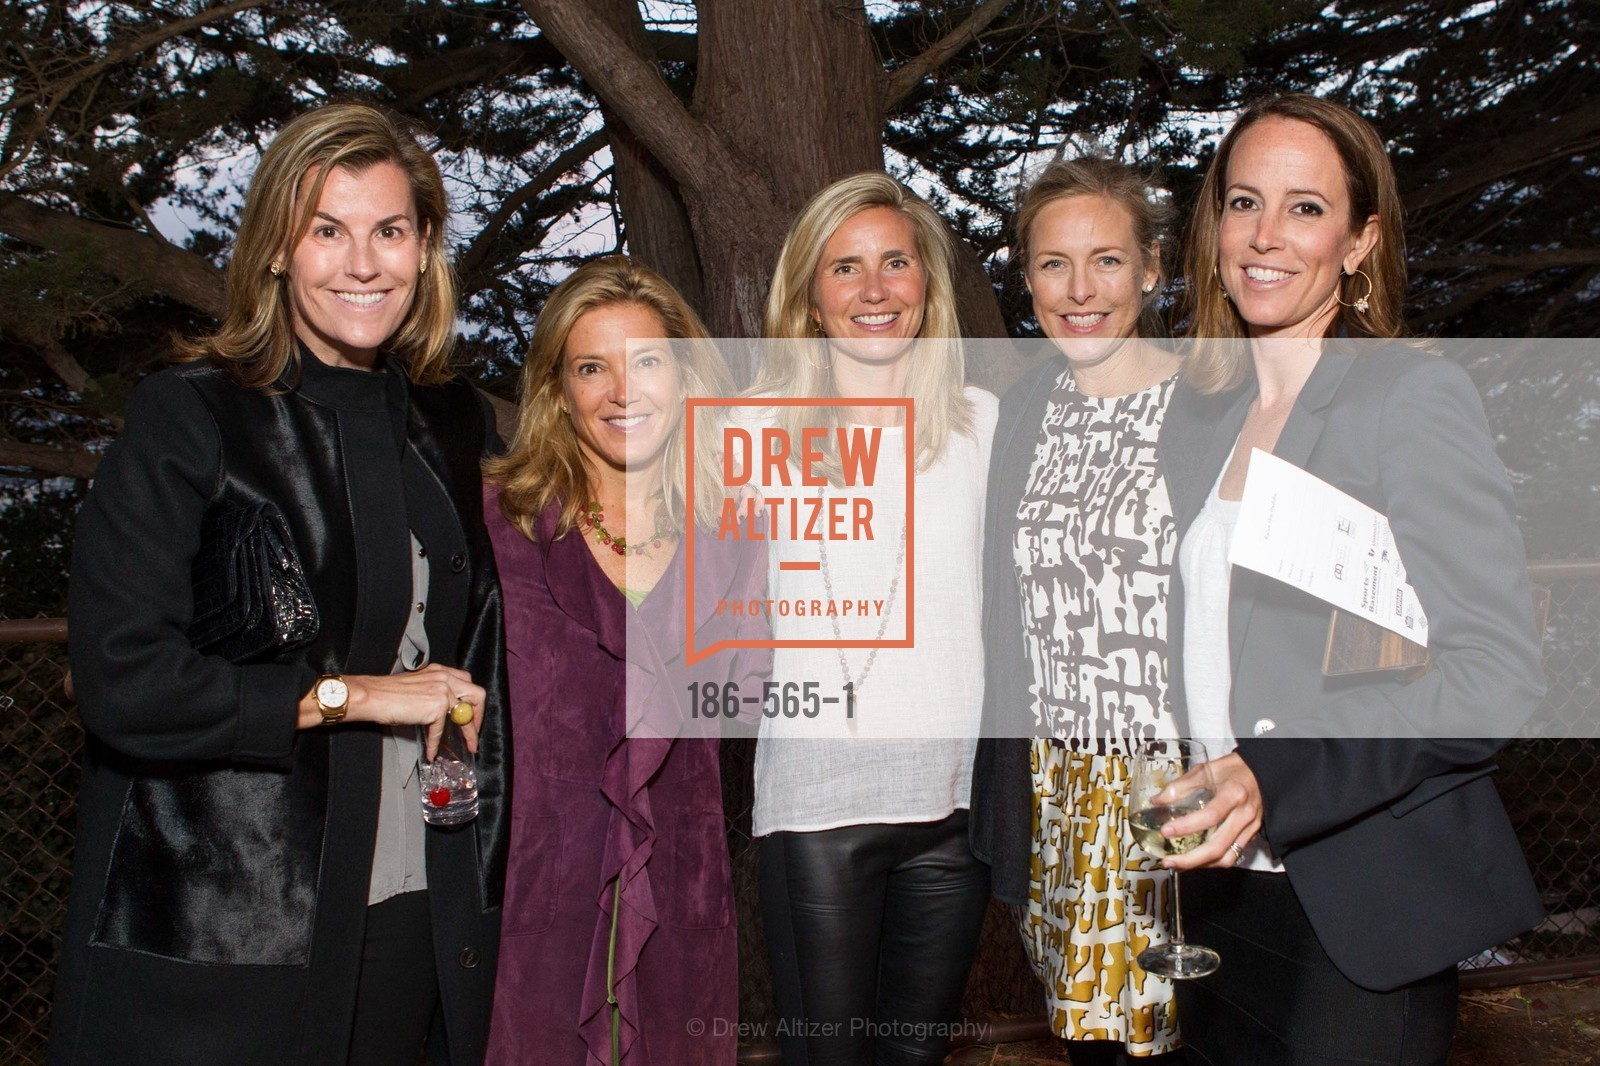 Meredith Levy, Kathryn Lasater, Ashley Waltemath, Kate Chung, Emily Martin, SAKS FIFTH AVENUE Hosts The GLAAD GALA Kick-Off Party, US, September 12th, 2014,Drew Altizer, Drew Altizer Photography, full-service agency, private events, San Francisco photographer, photographer california